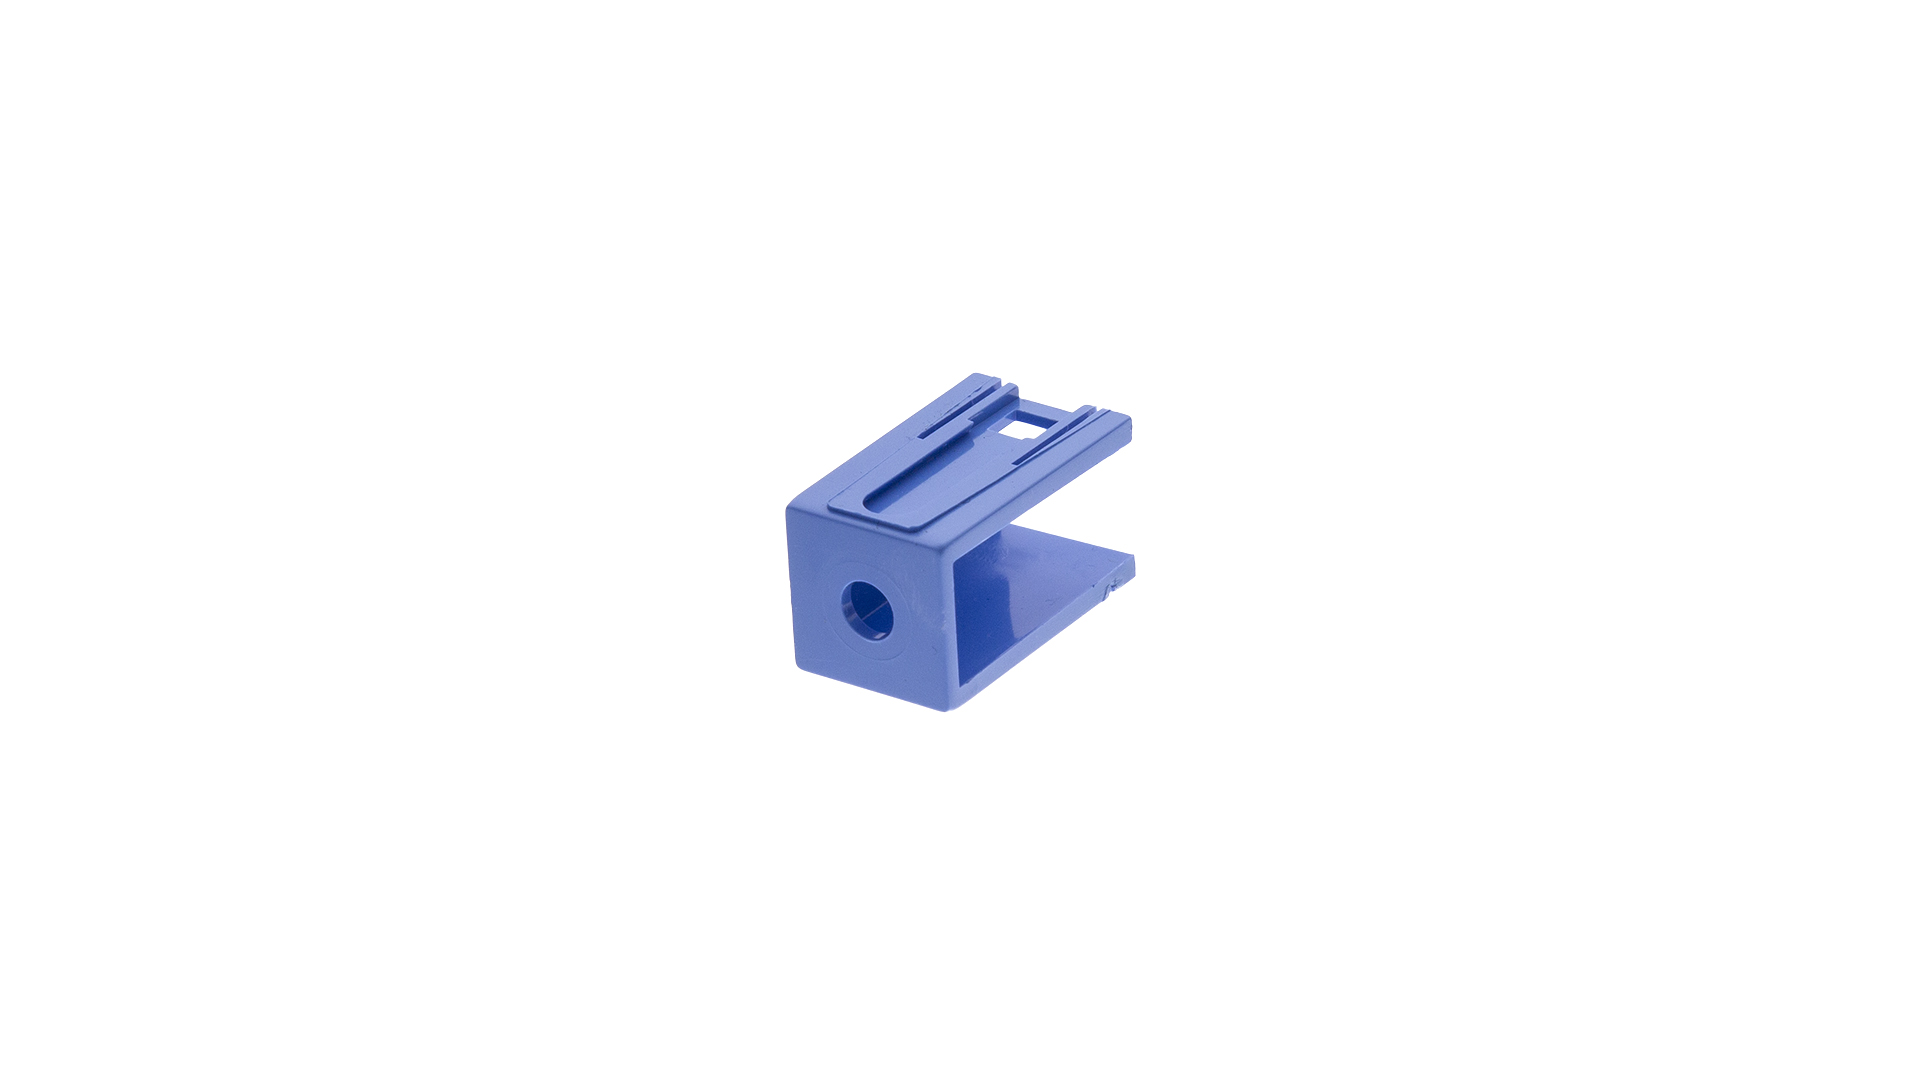 PP75 Accessories Mounting Wing for Locking Housings